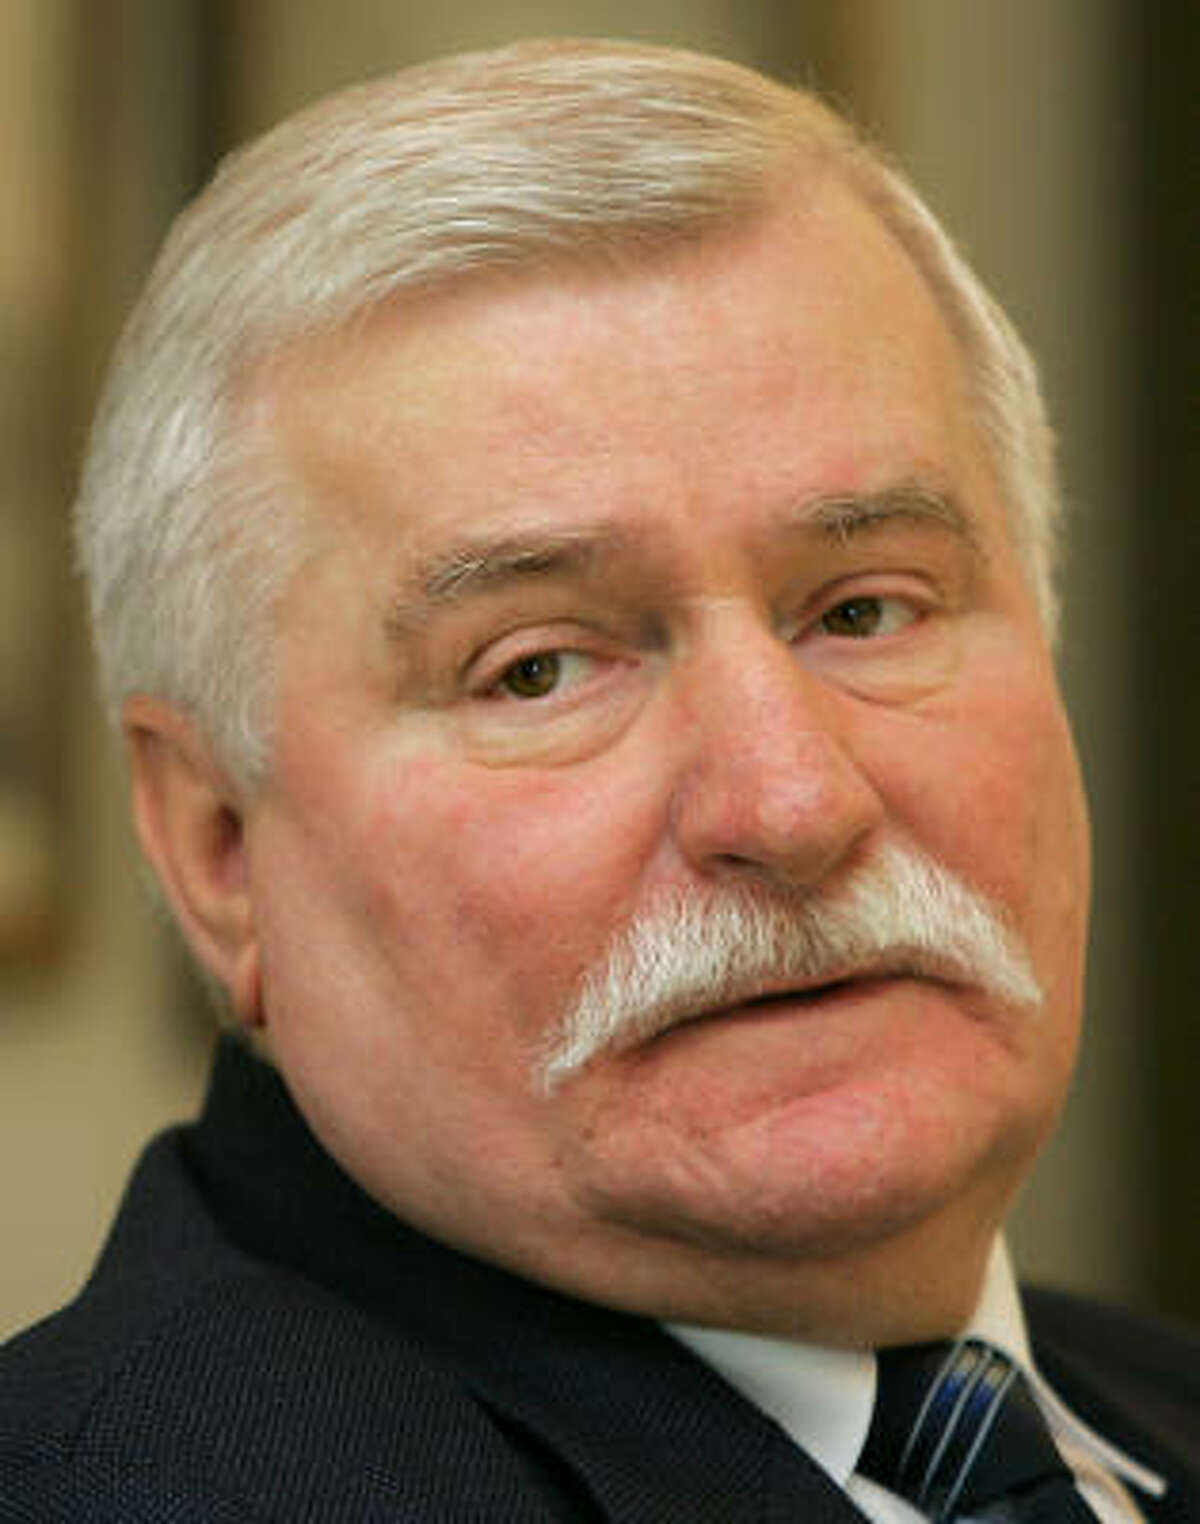 Former Polish President and Nobel peace laureate Lech Walesa is shown in this 2005 file photo attending at a news conference in Madrid.